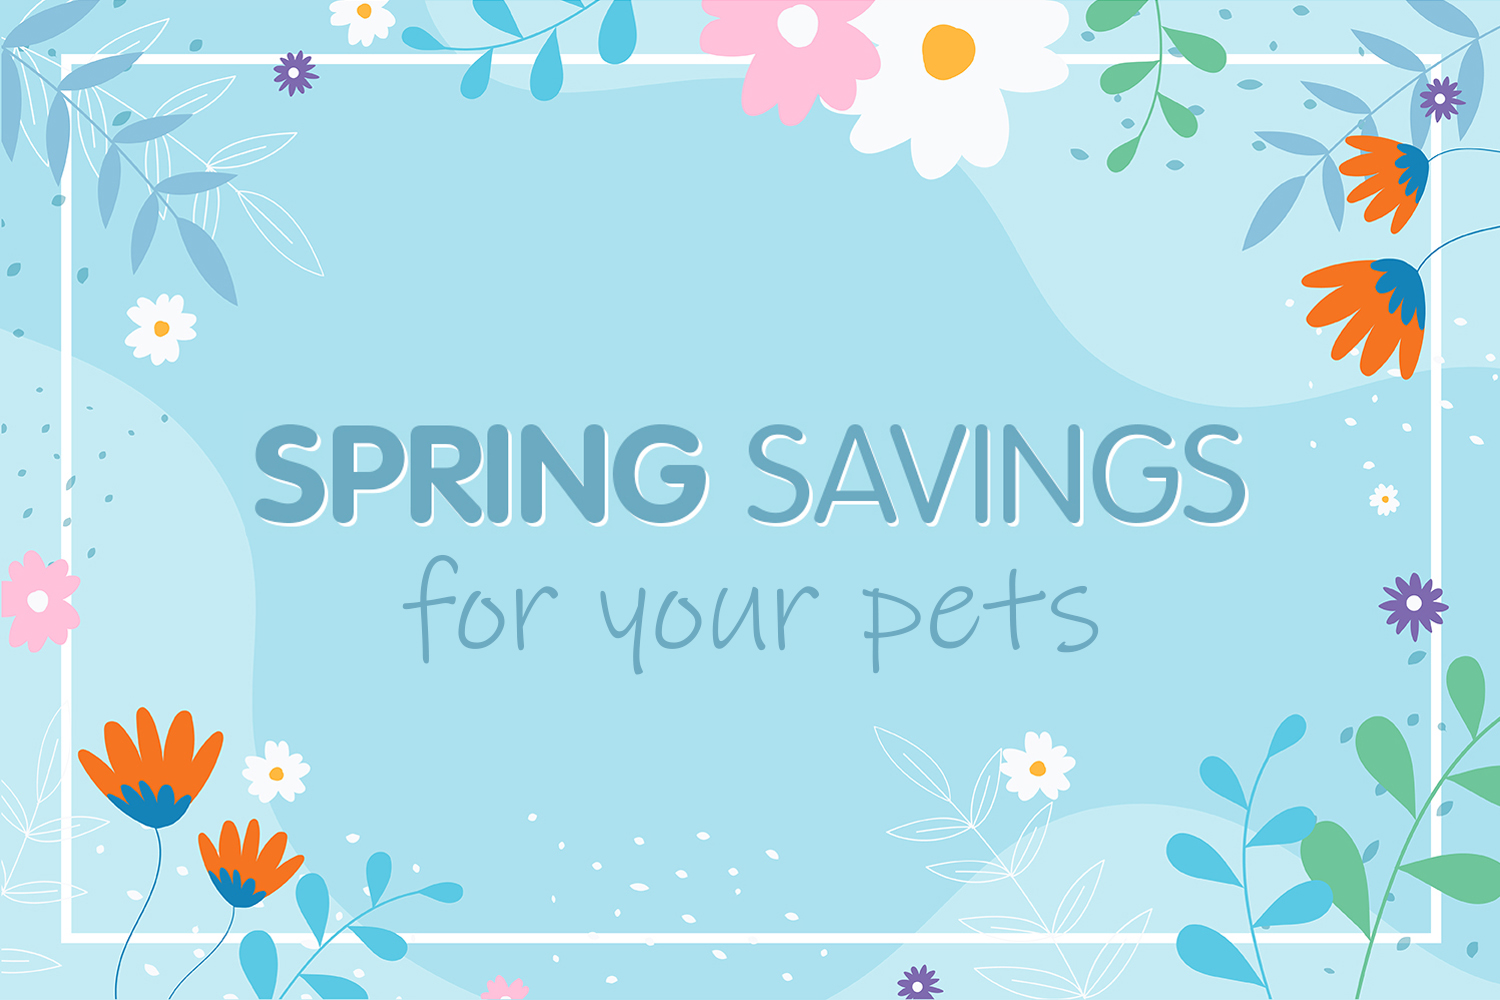 Treat your furry friends...